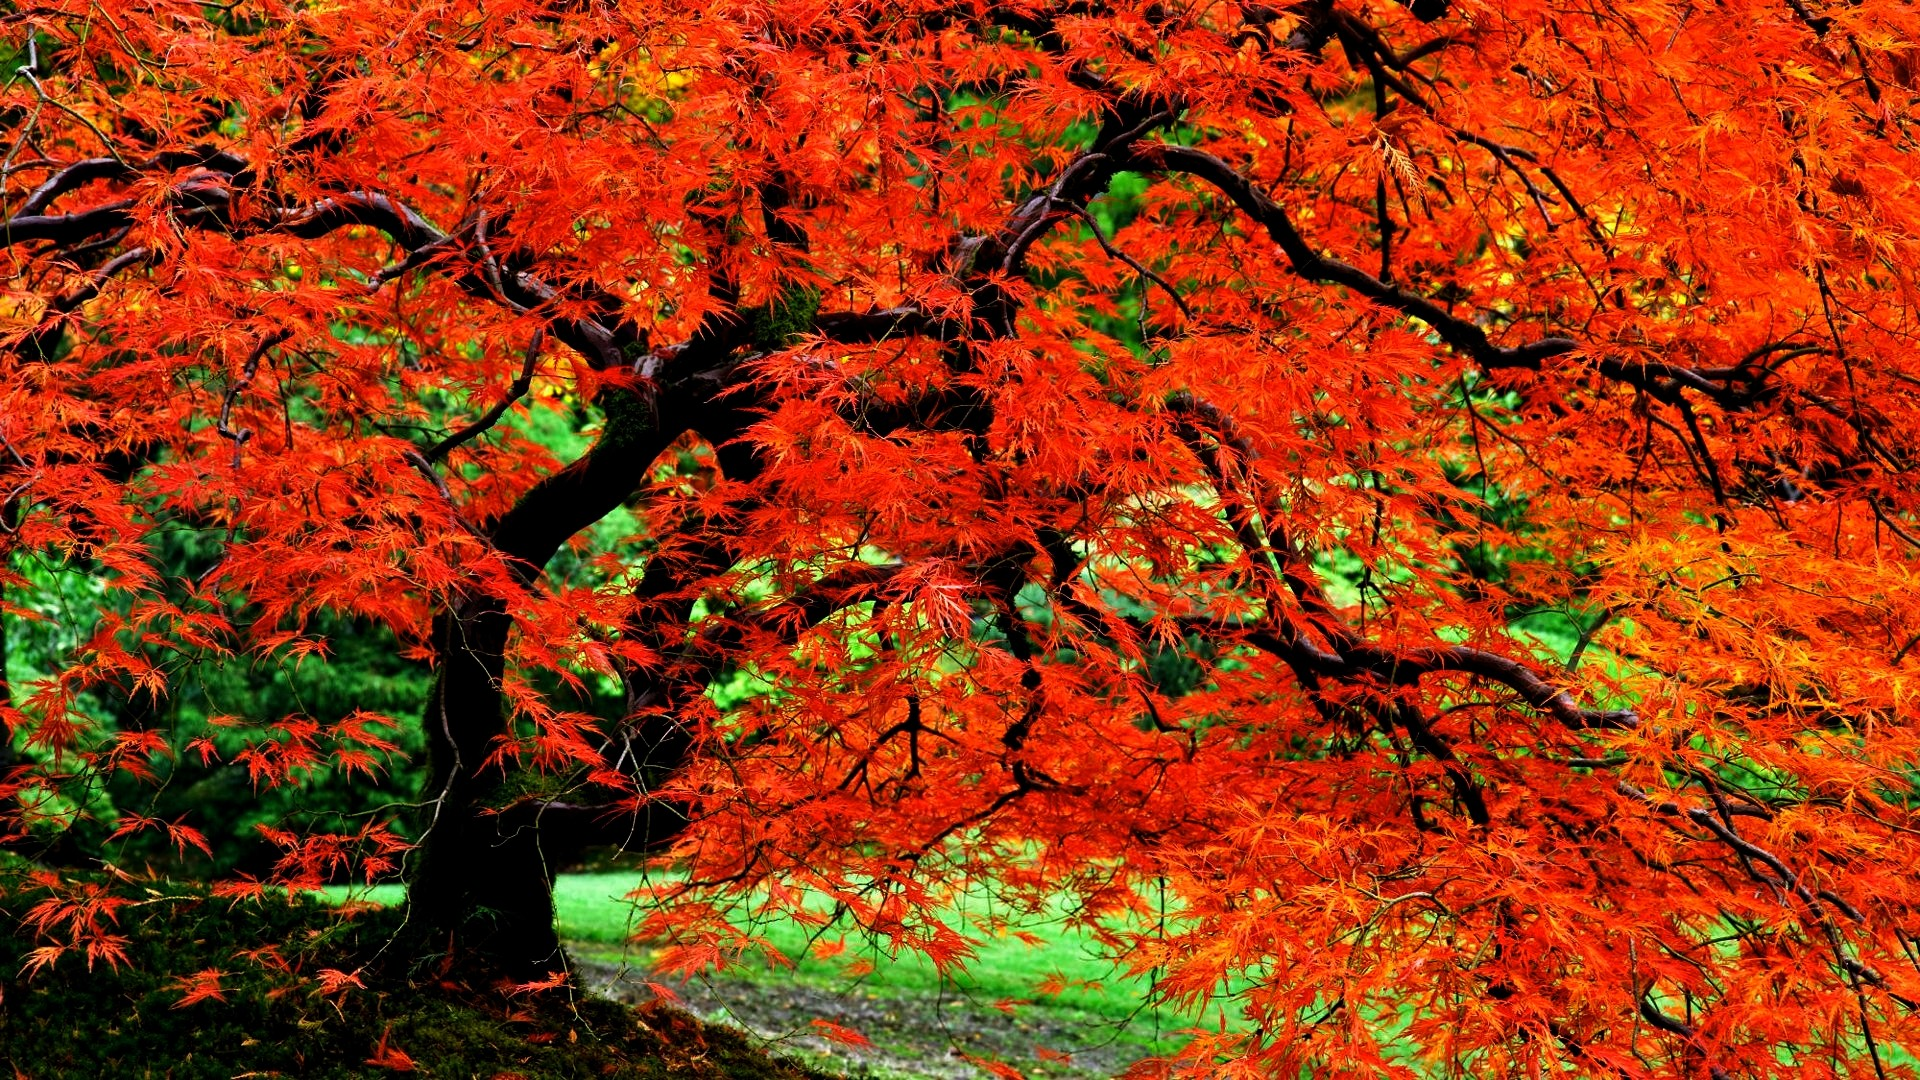 Res: 1920x1080, Earth - Tree Nature Fall Foliage Red Close-Up Leaf Garden Japanese Wallpaper